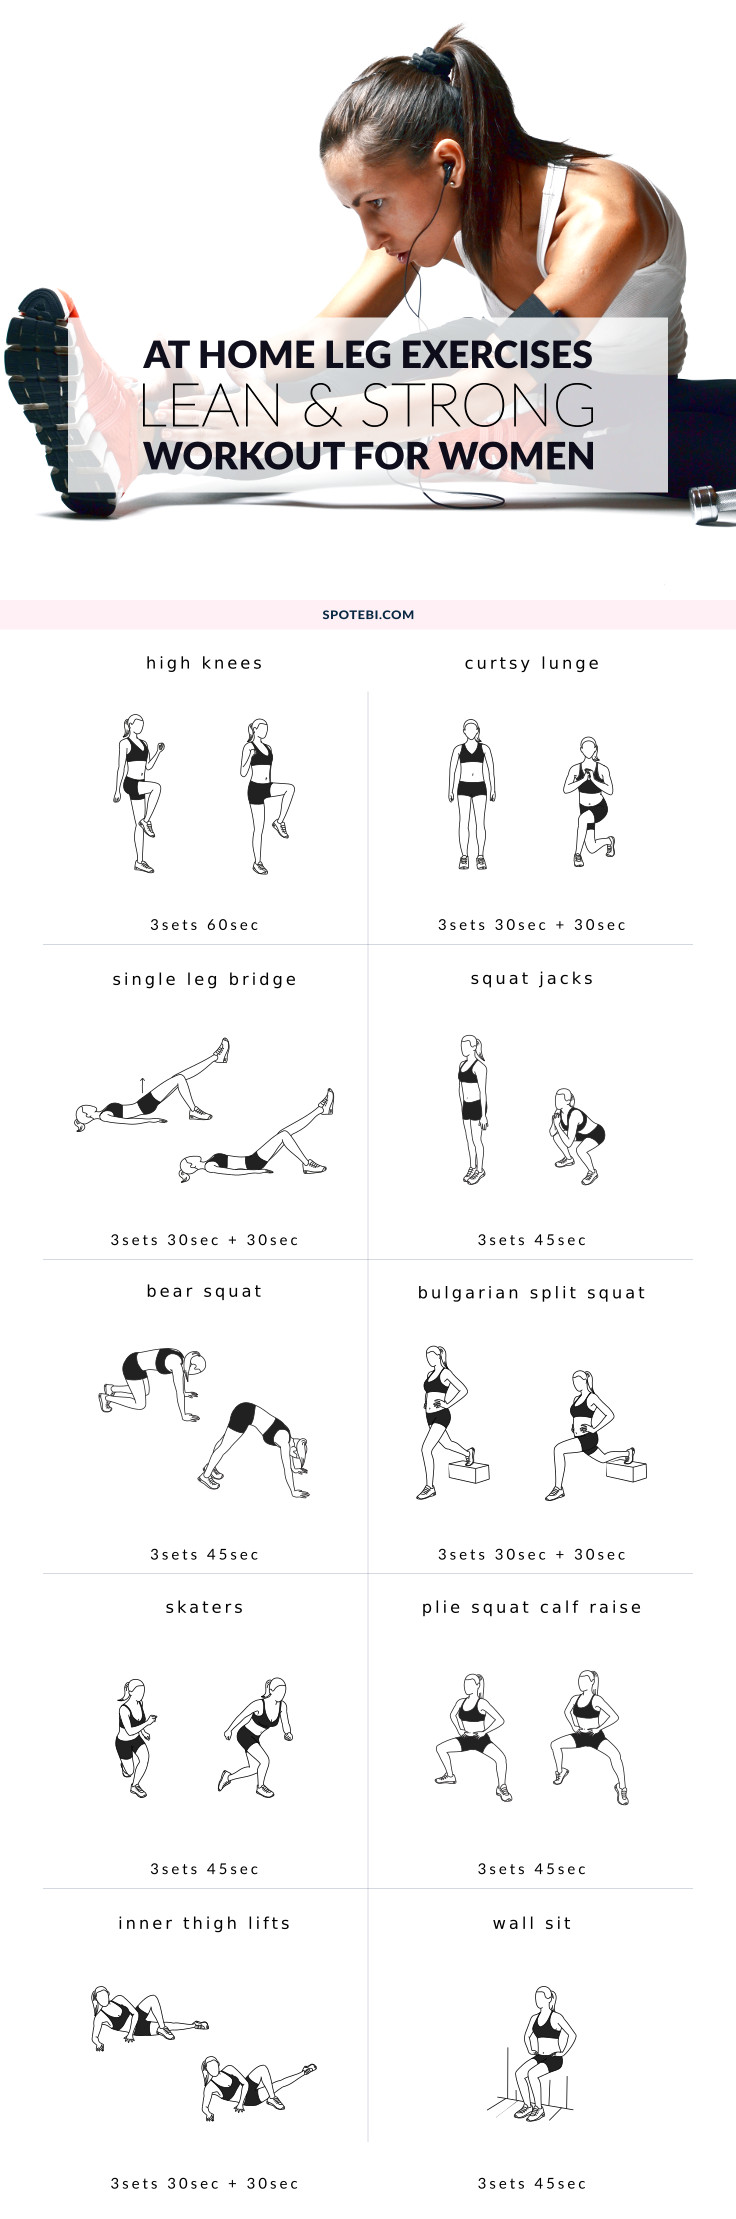 Upgrade your workout routine with these 10 leg exercises for women. Work your thig